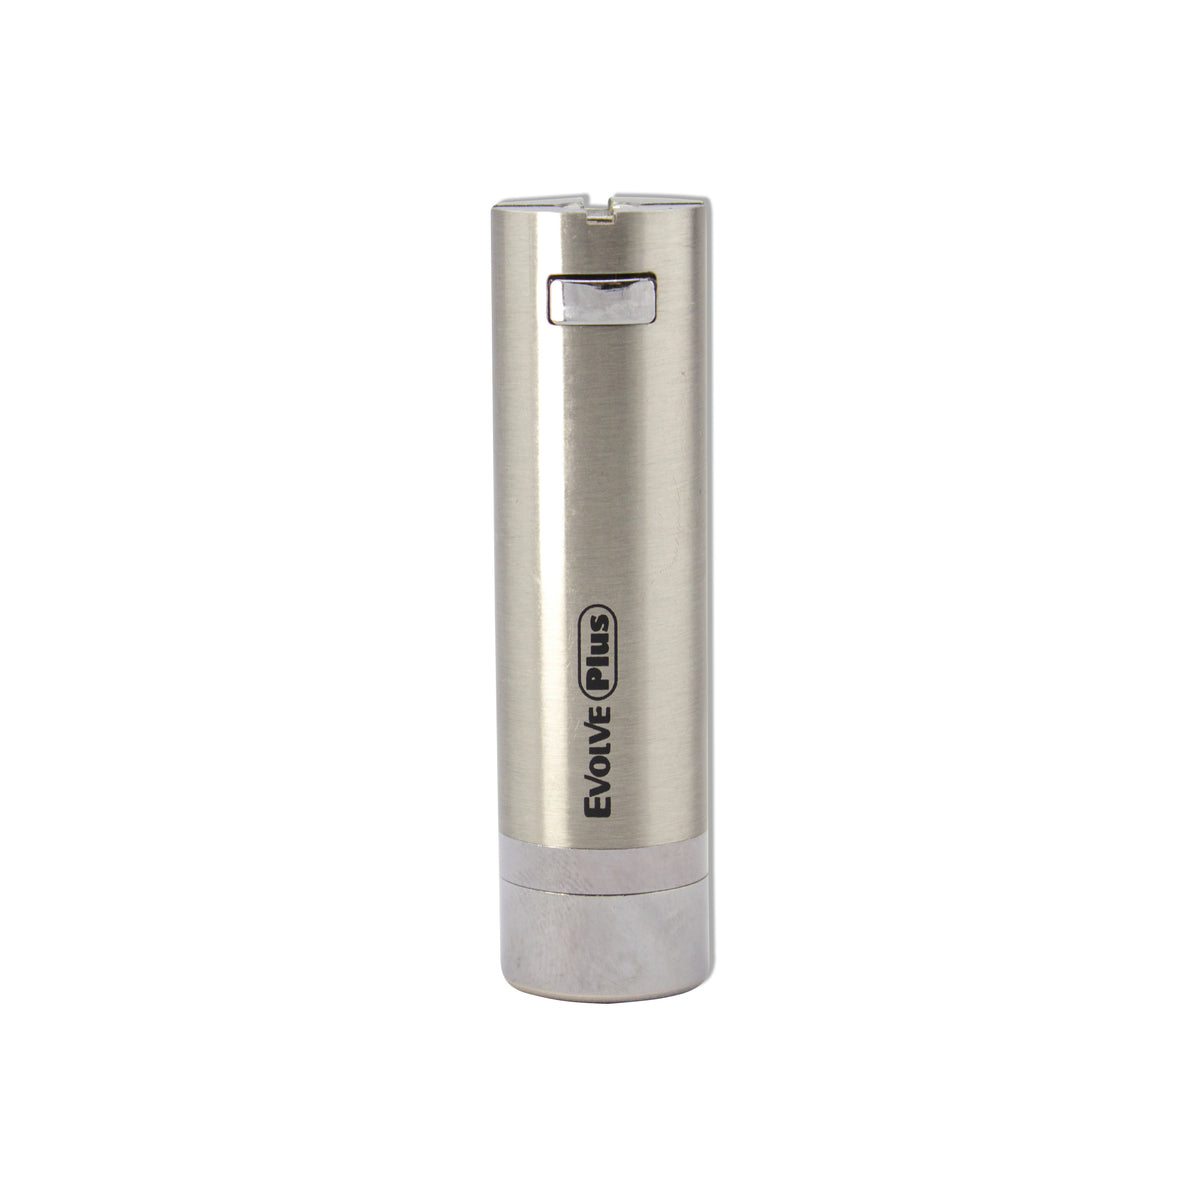 Yocan Evolve PLUS Battery - Silver - Fraser 420 Smoke Shop - Surrey, BC - Batteries - Fraser Stop n Go - Glass & Gifts, Bongs, Vaporizers, Vape, Green Leaf Hemp & Blunts